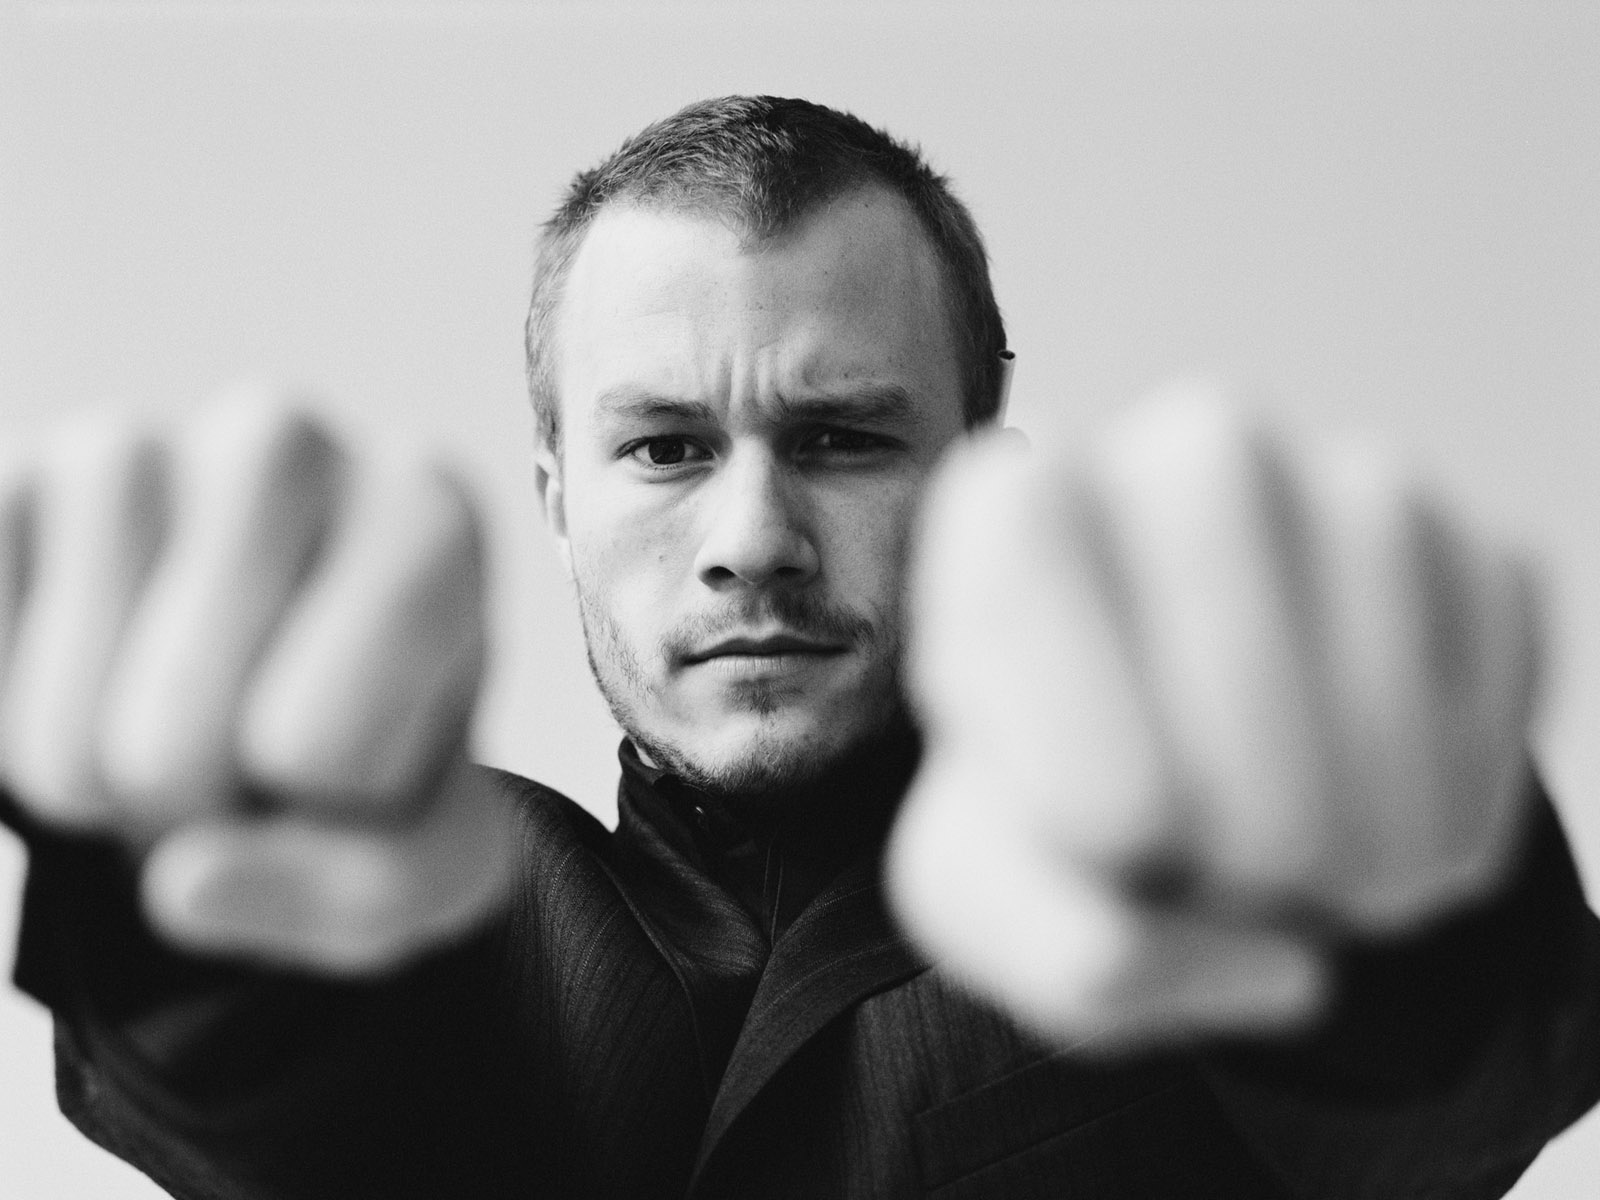 http://1.bp.blogspot.com/-hA240pUAccI/T61A8ril0mI/AAAAAAAAAM0/2uUmI_9EdSE/s1600/Heath-Ledger-Wallpaper-2.jpg